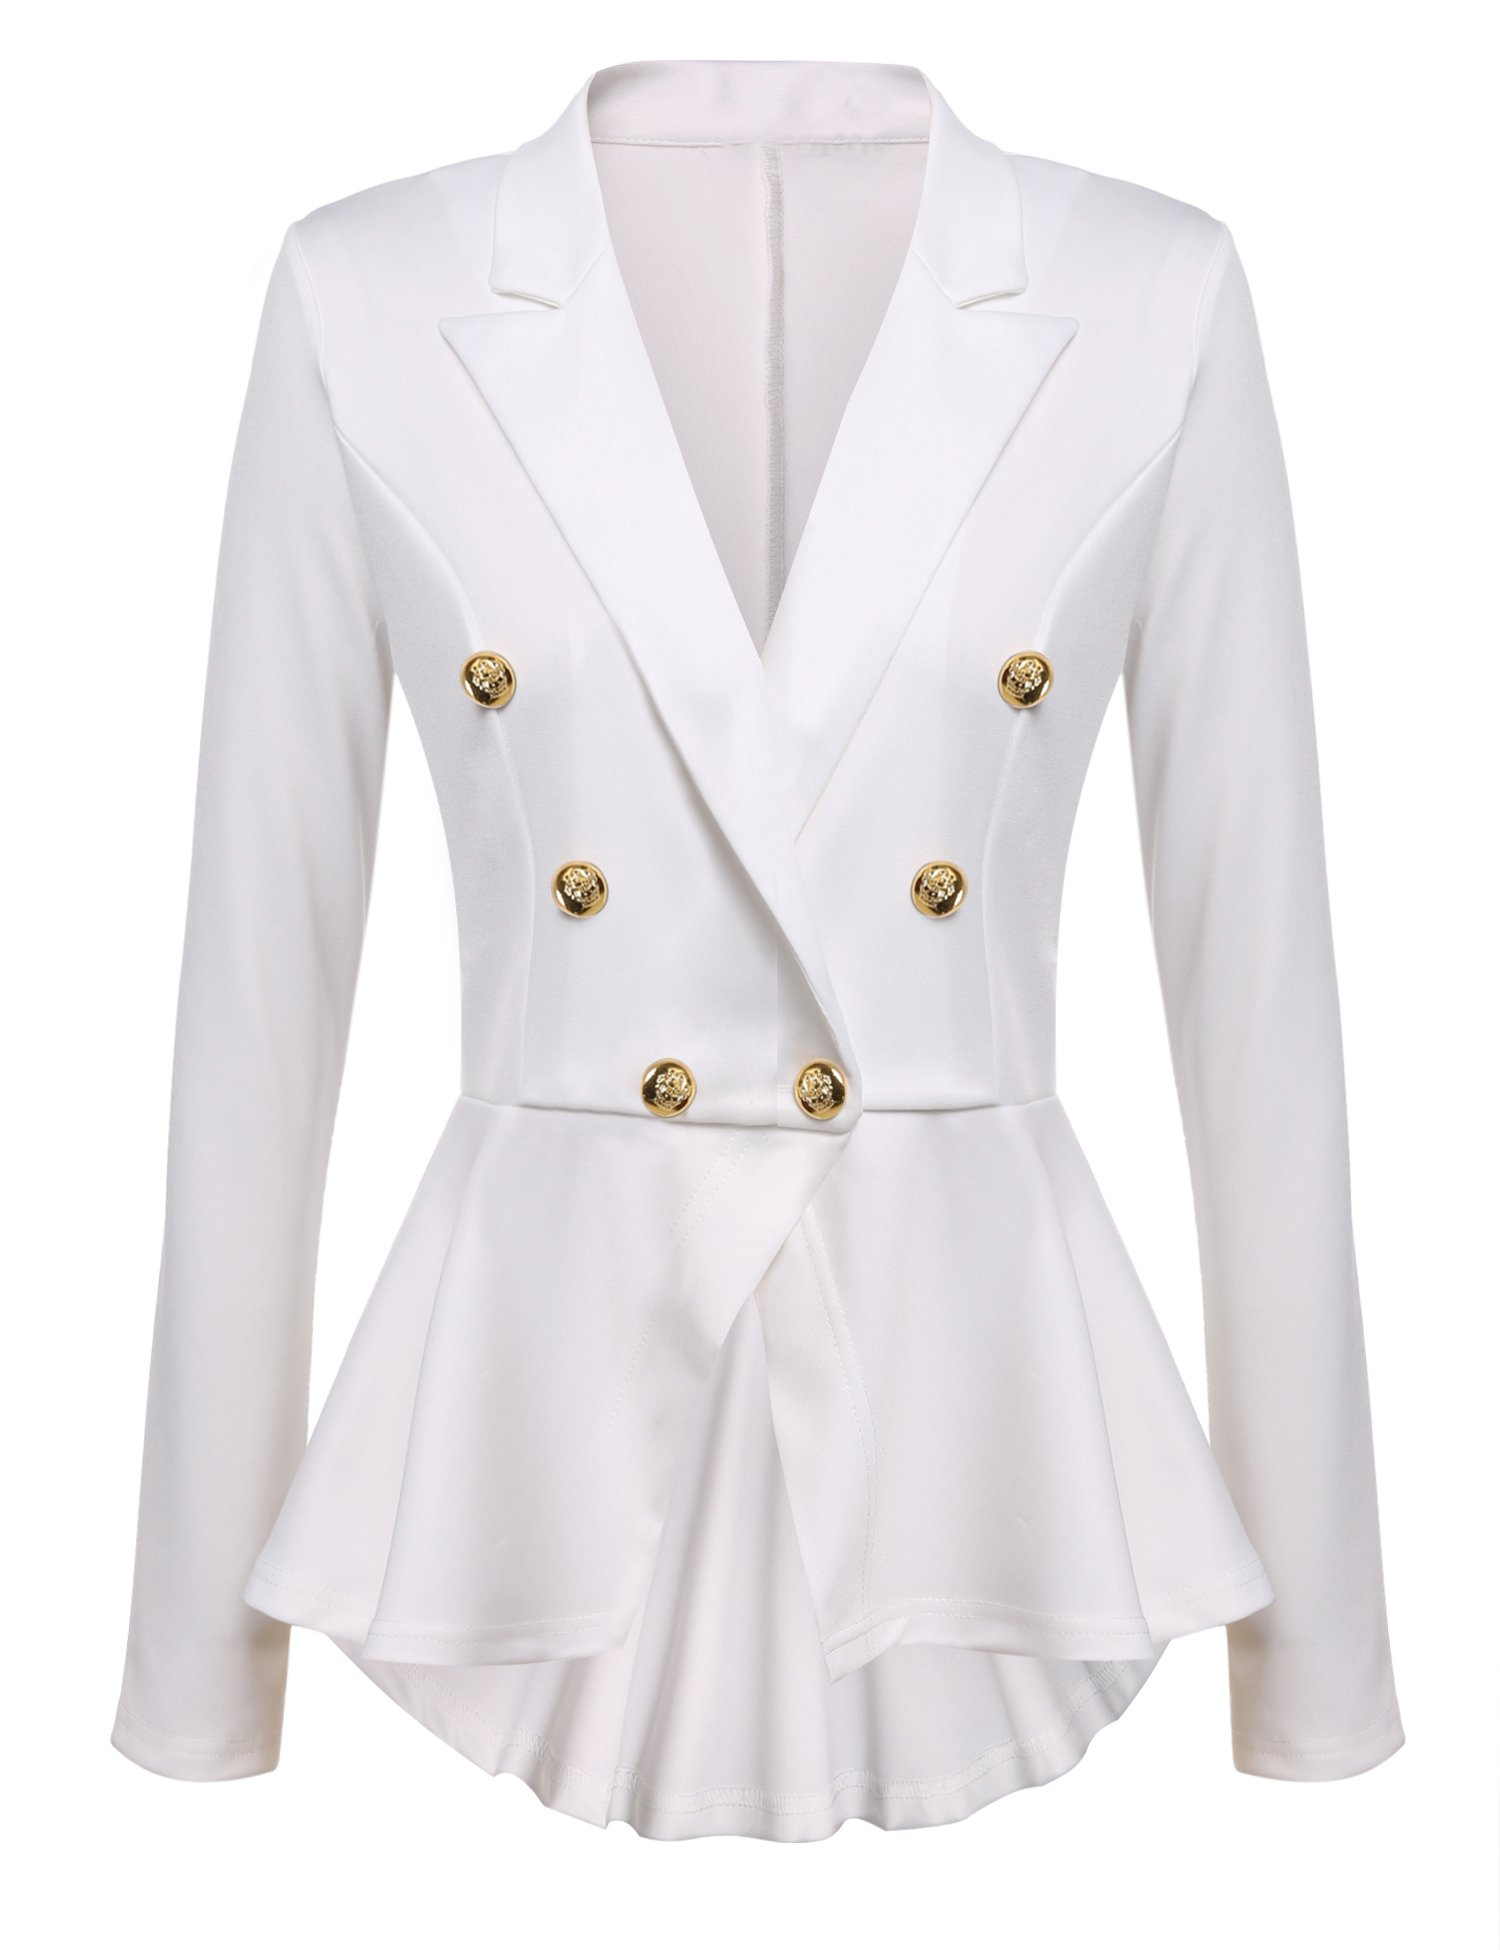 Gumod Women's Casual Work Office Solid Color Open Front Cardigan Blazer Jacket White XL